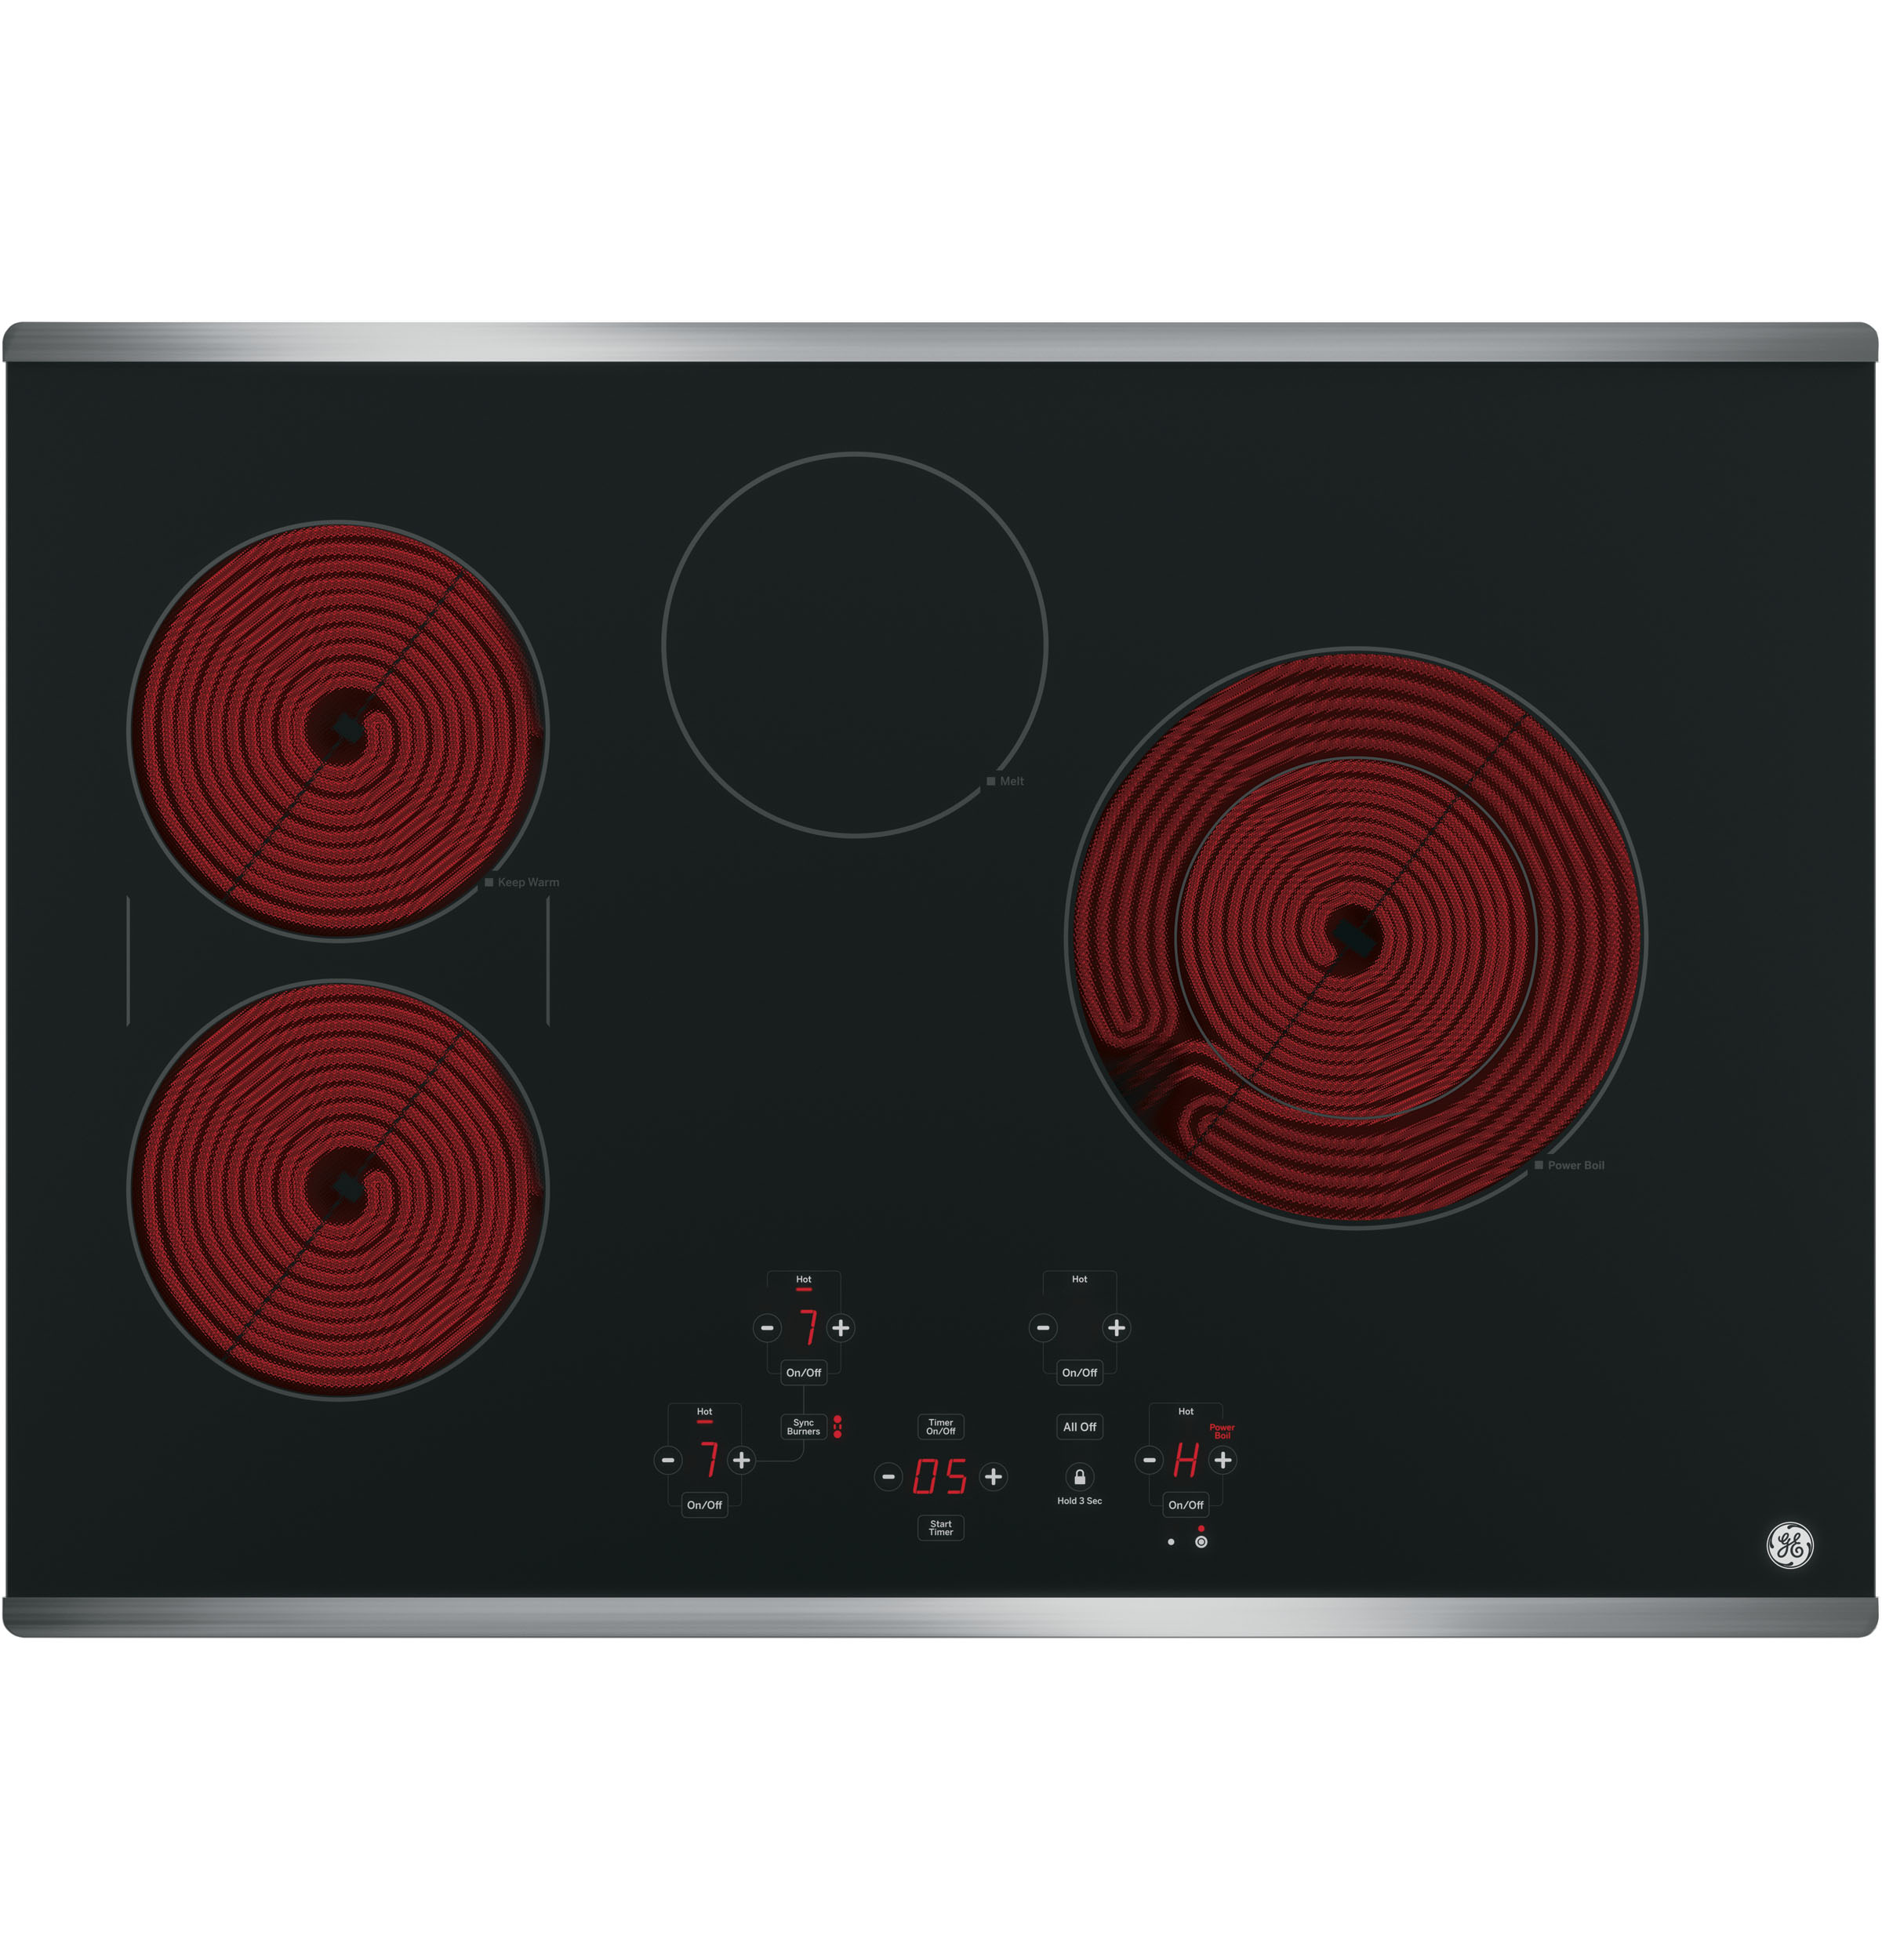 "Model: JP5030SJSS | GE GE® 30"" Built-In Touch Control Electric Cooktop"